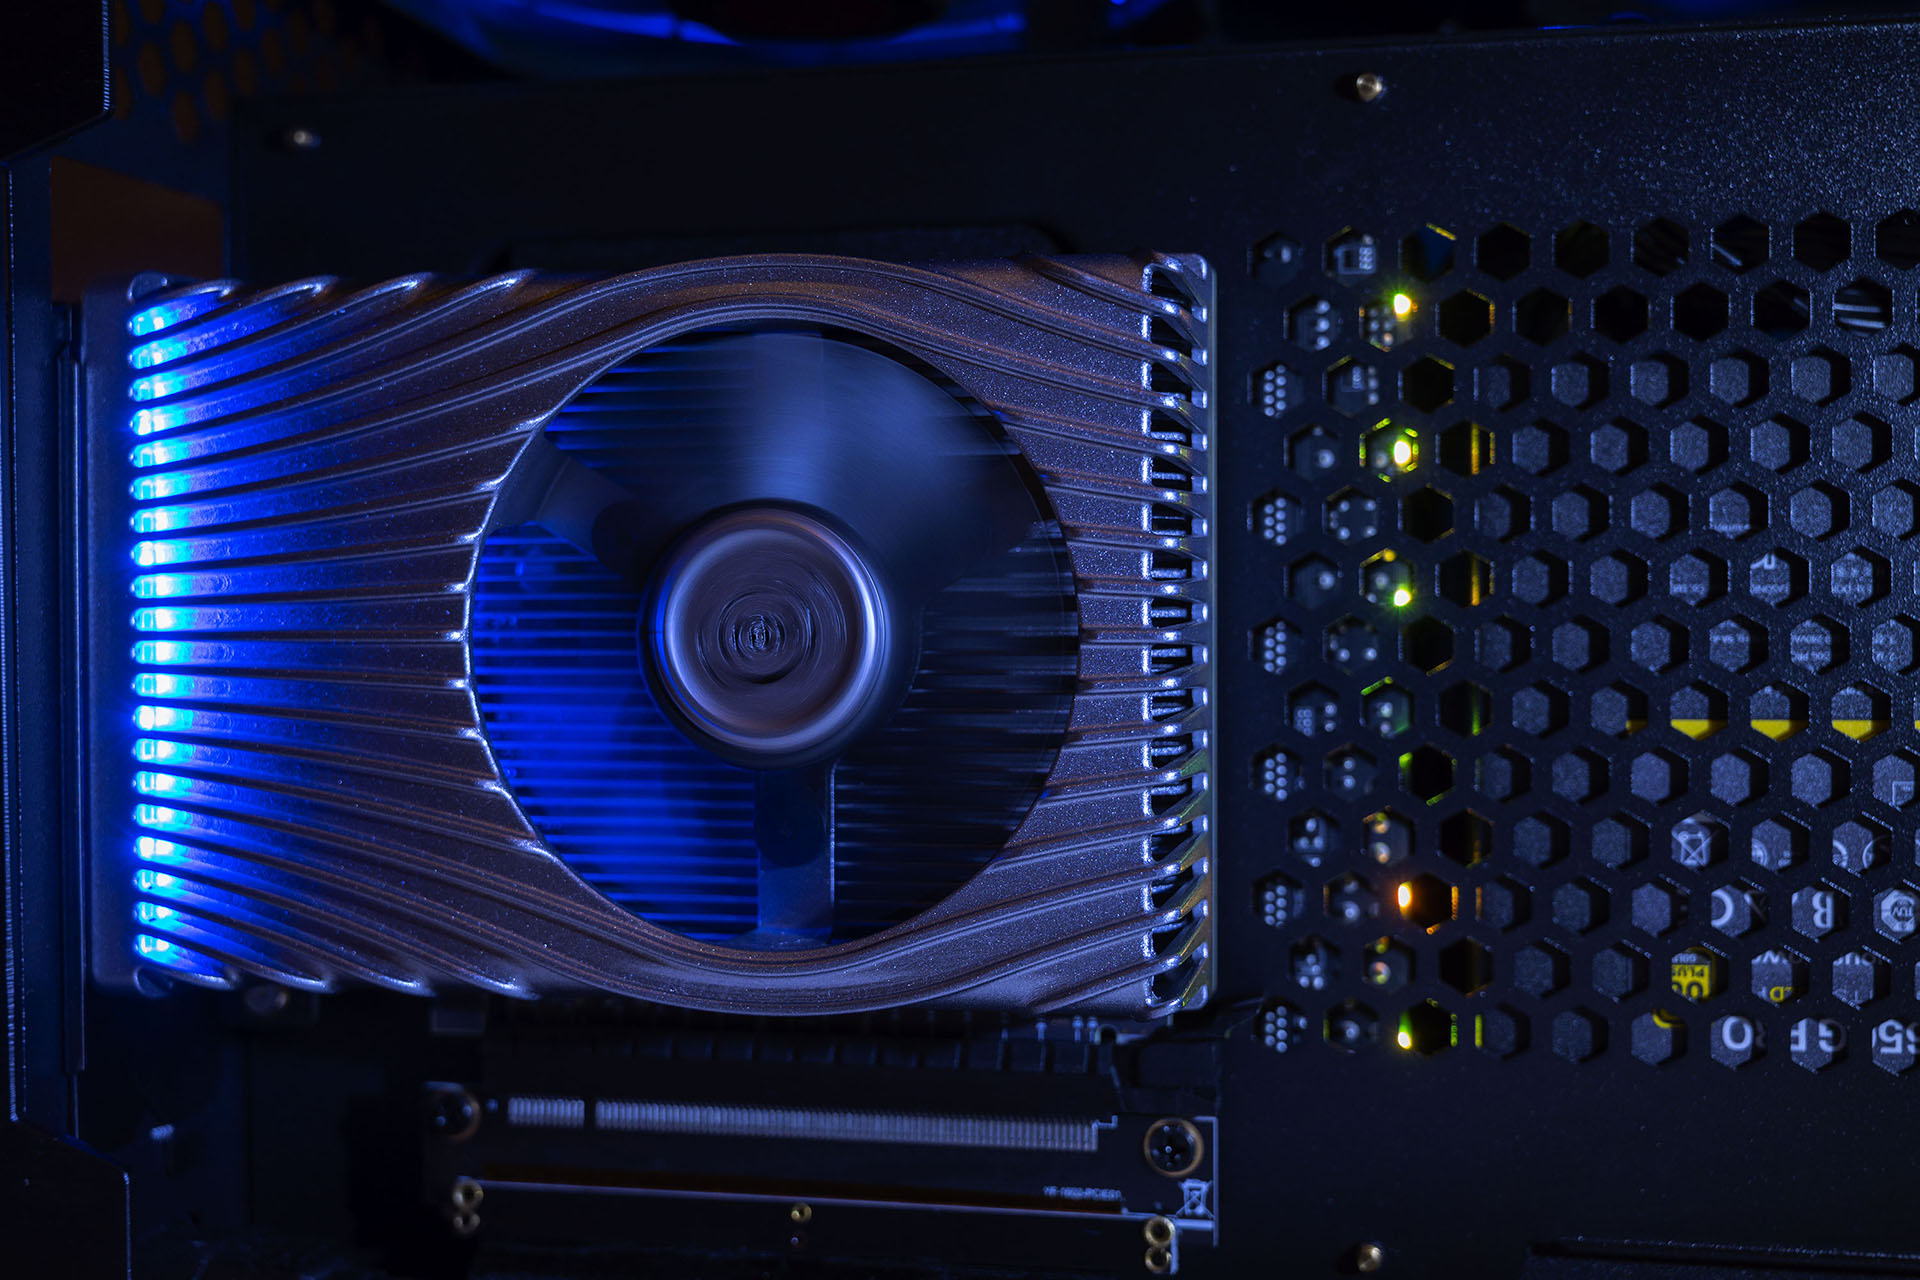 Intel is already benchmarking its high-end gaming GPU in 3DMark